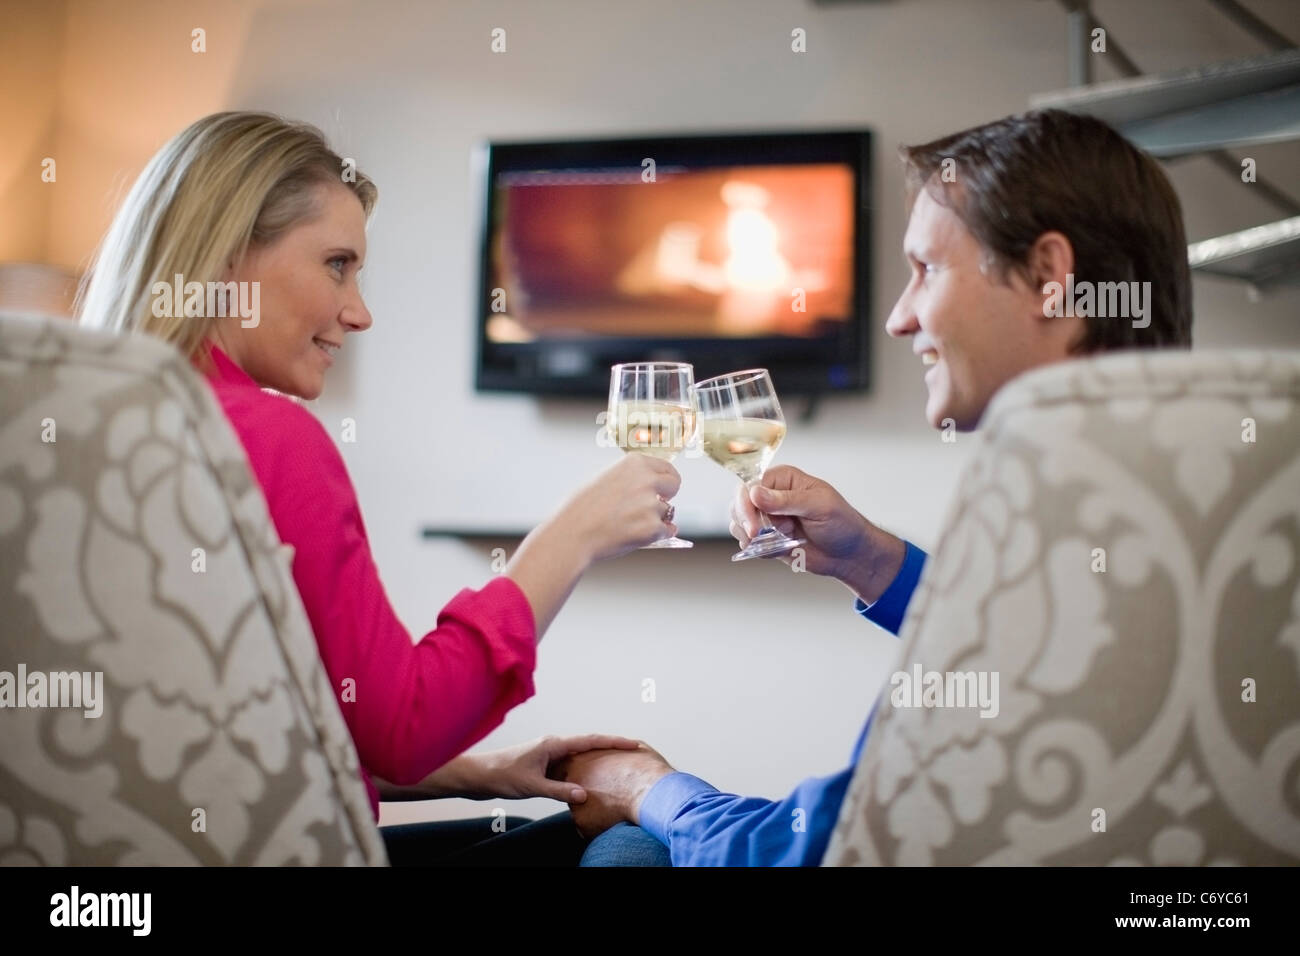 Couple toasting each other Photo Stock